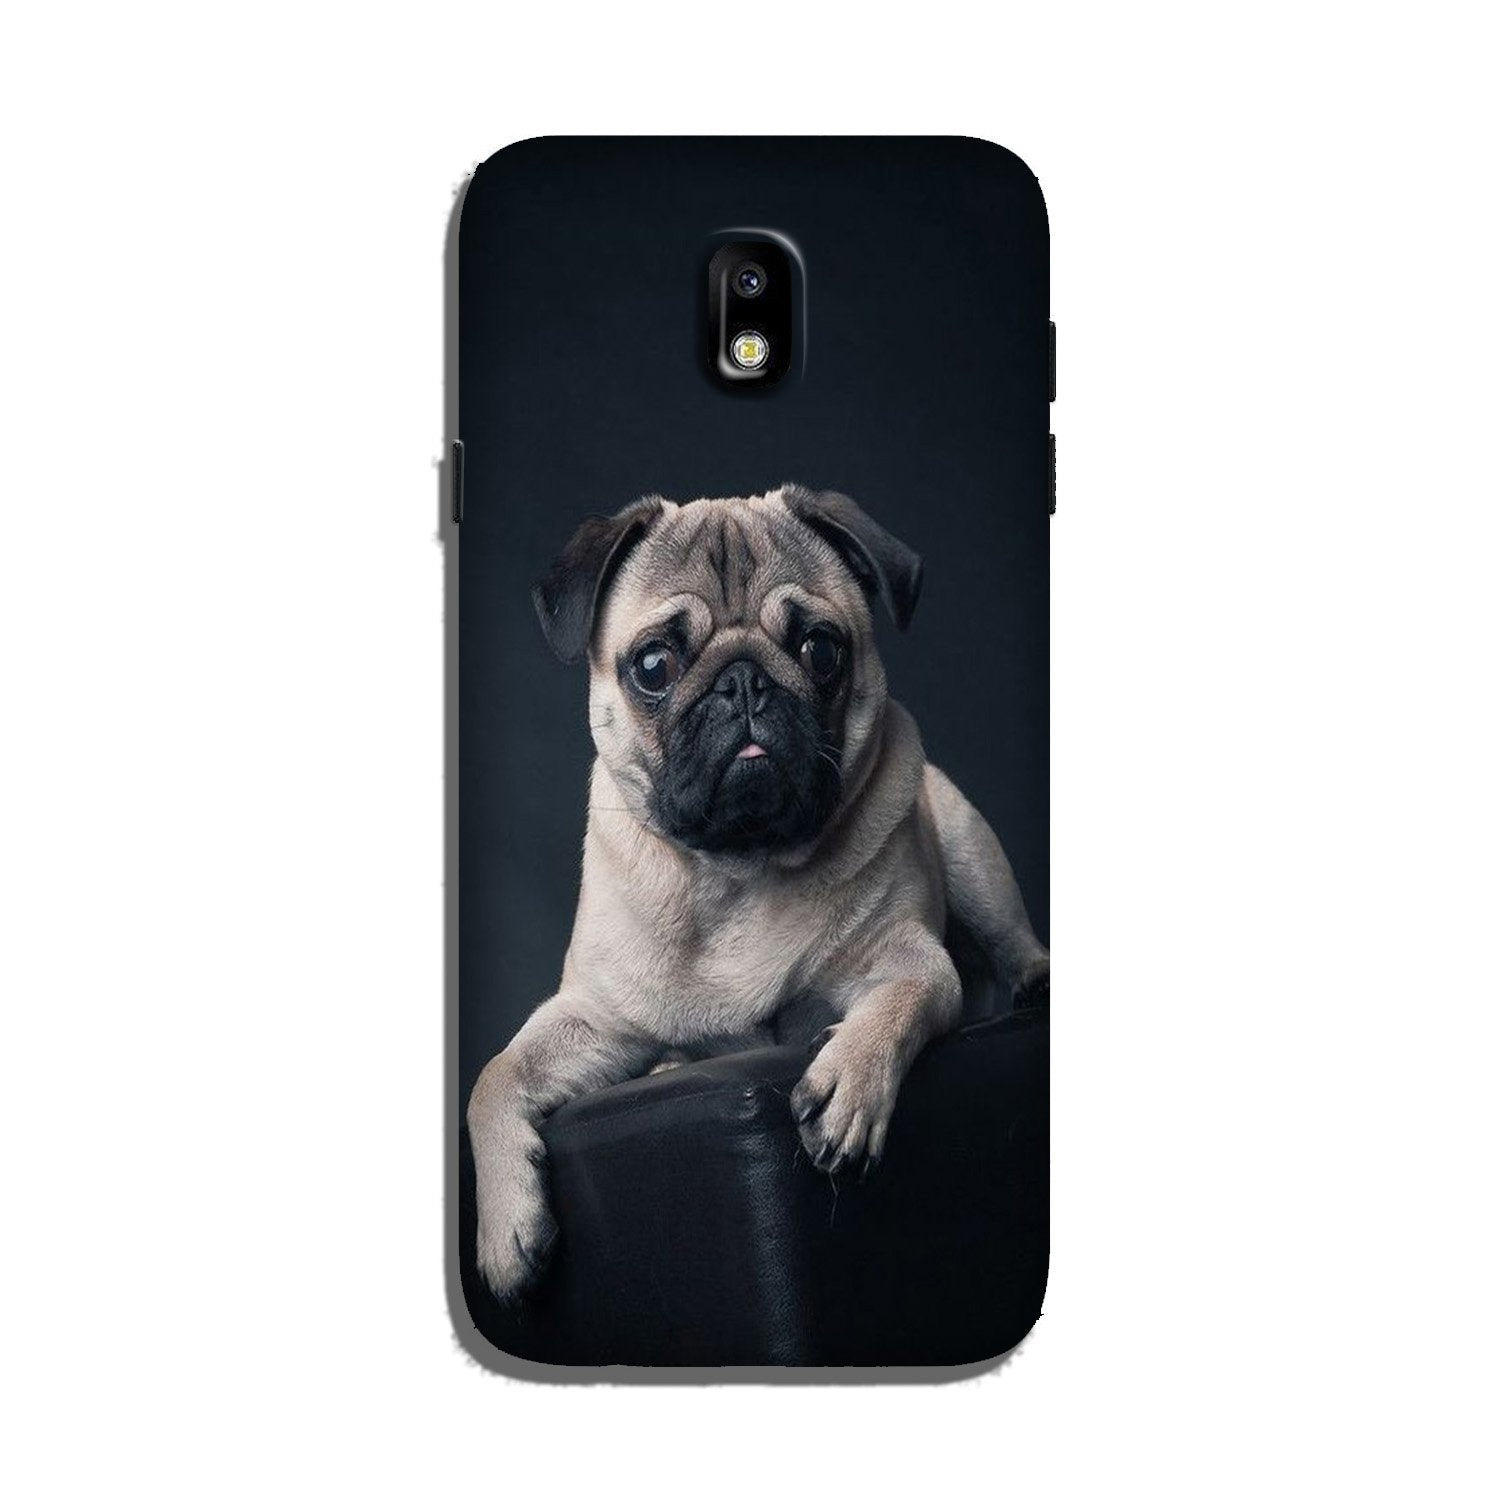 little Puppy Case for Galaxy J7 Pro